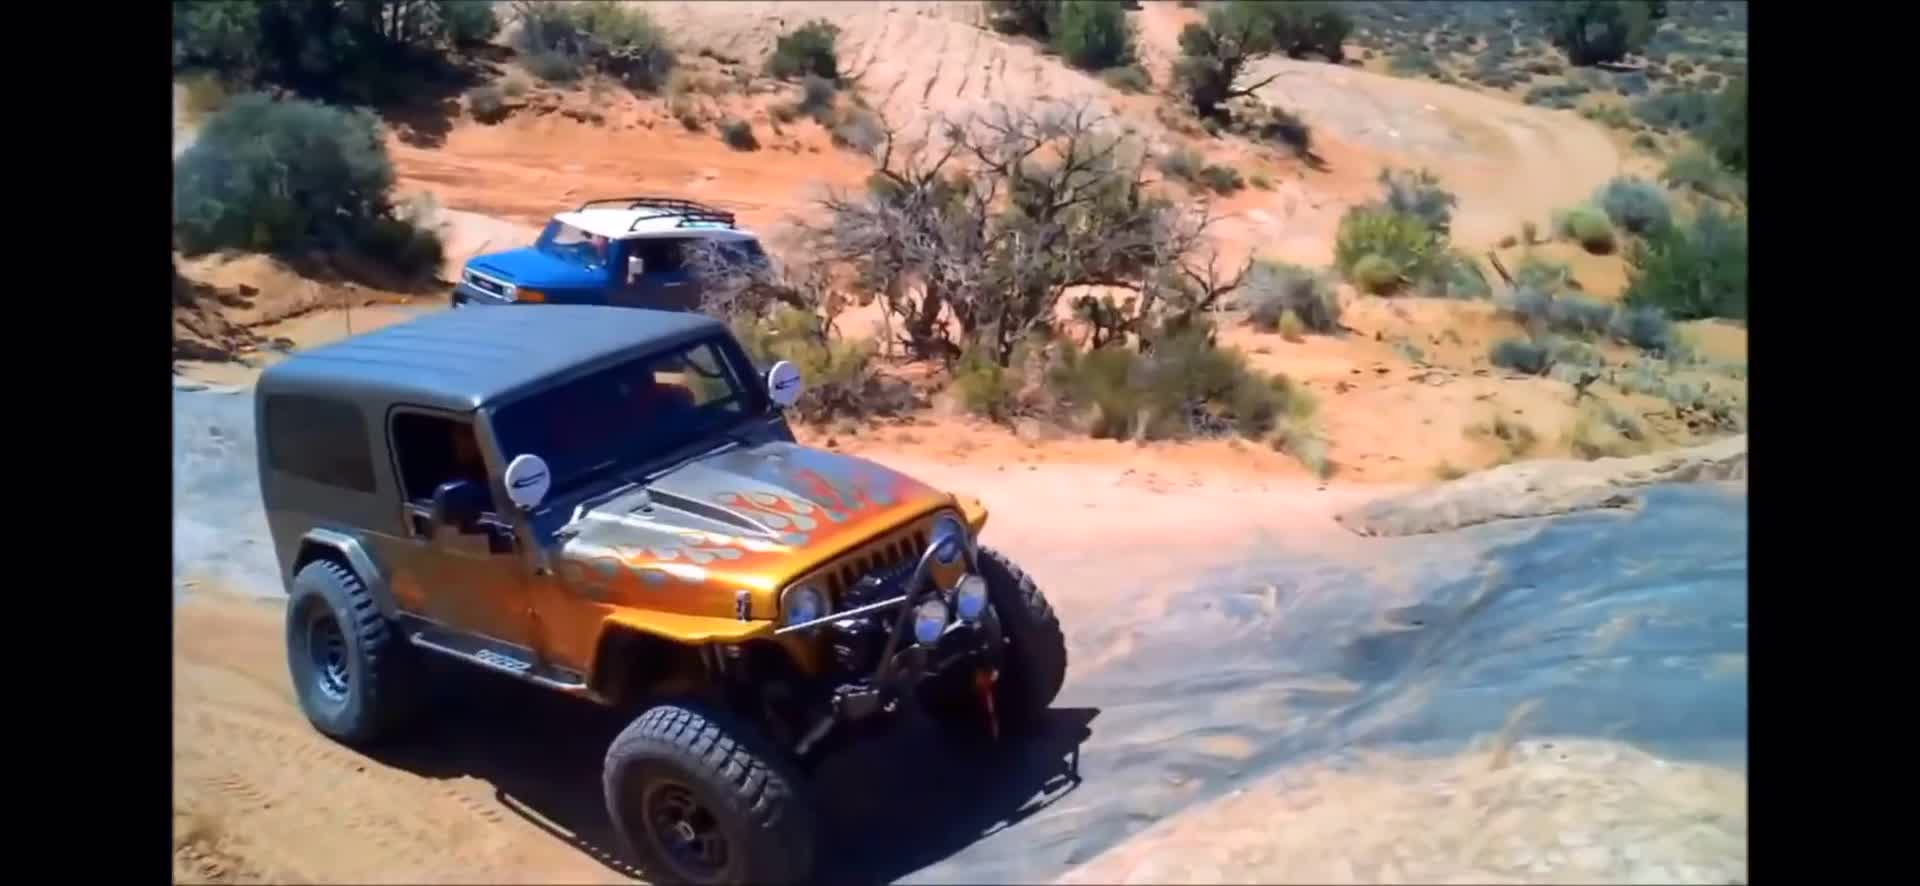 Piecesofbits, Driver flips Jeep while off-roading with their dog. GIFs